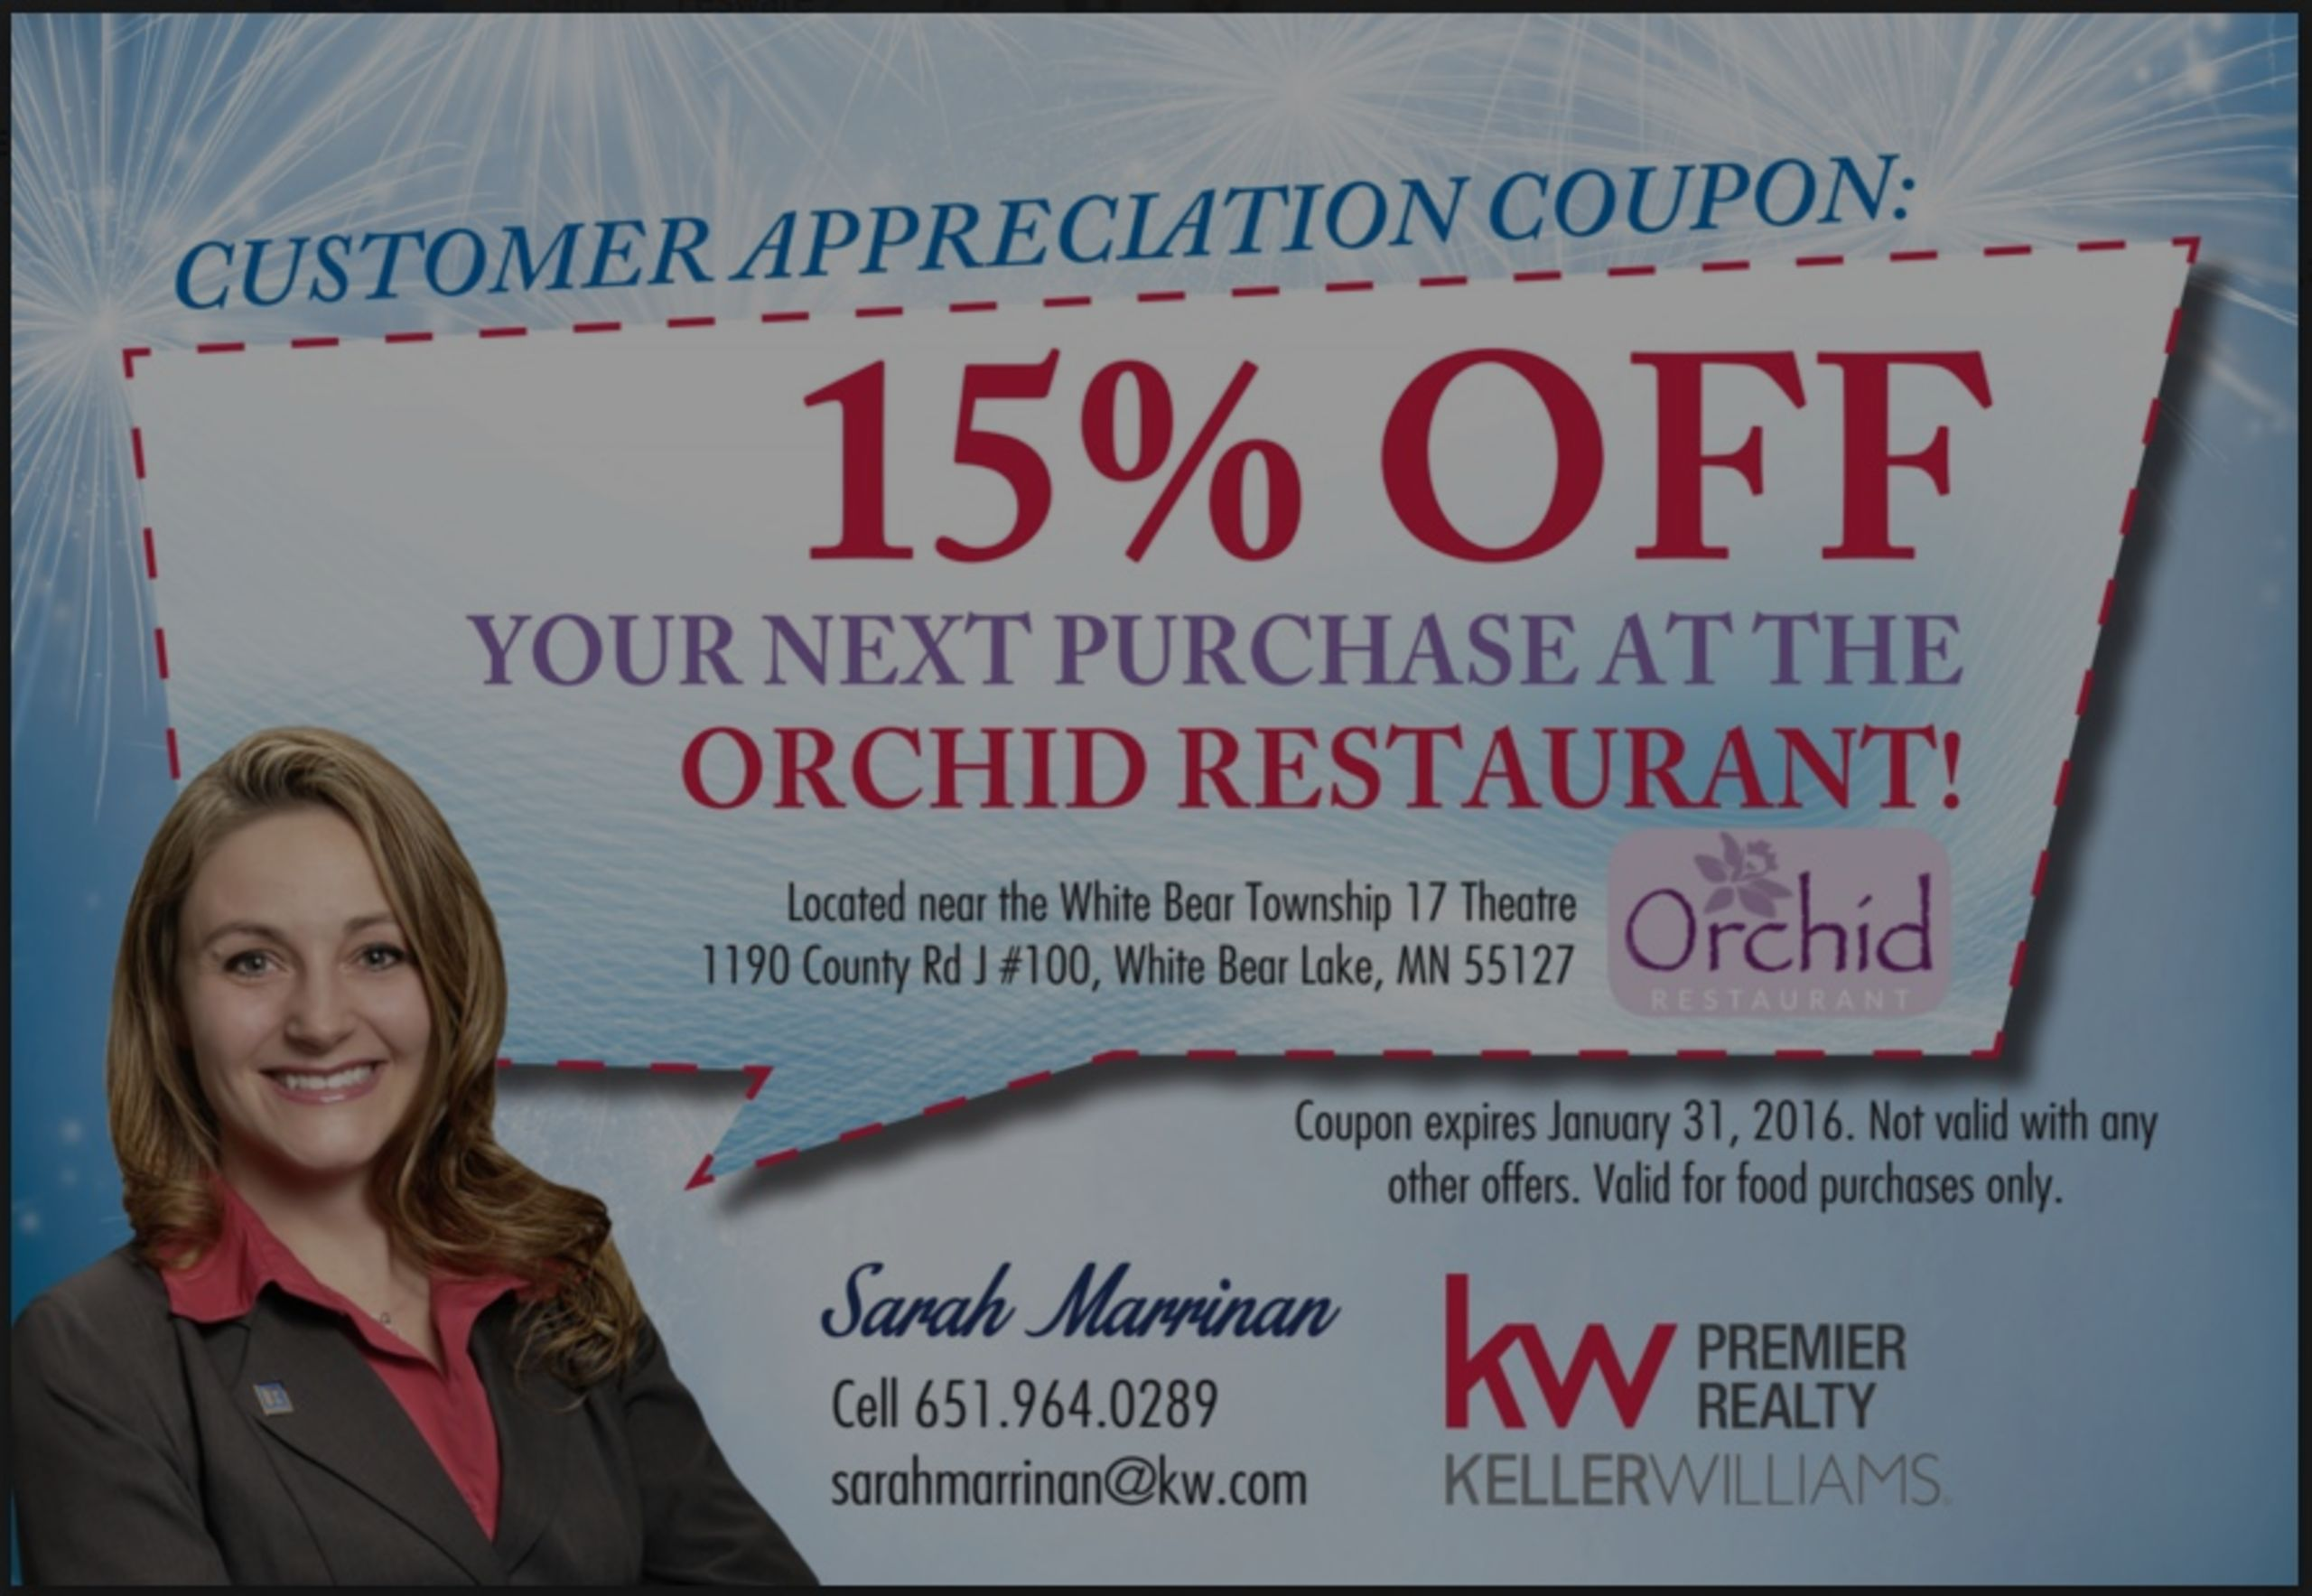 Discount Coupon For The Orchid Restaurant